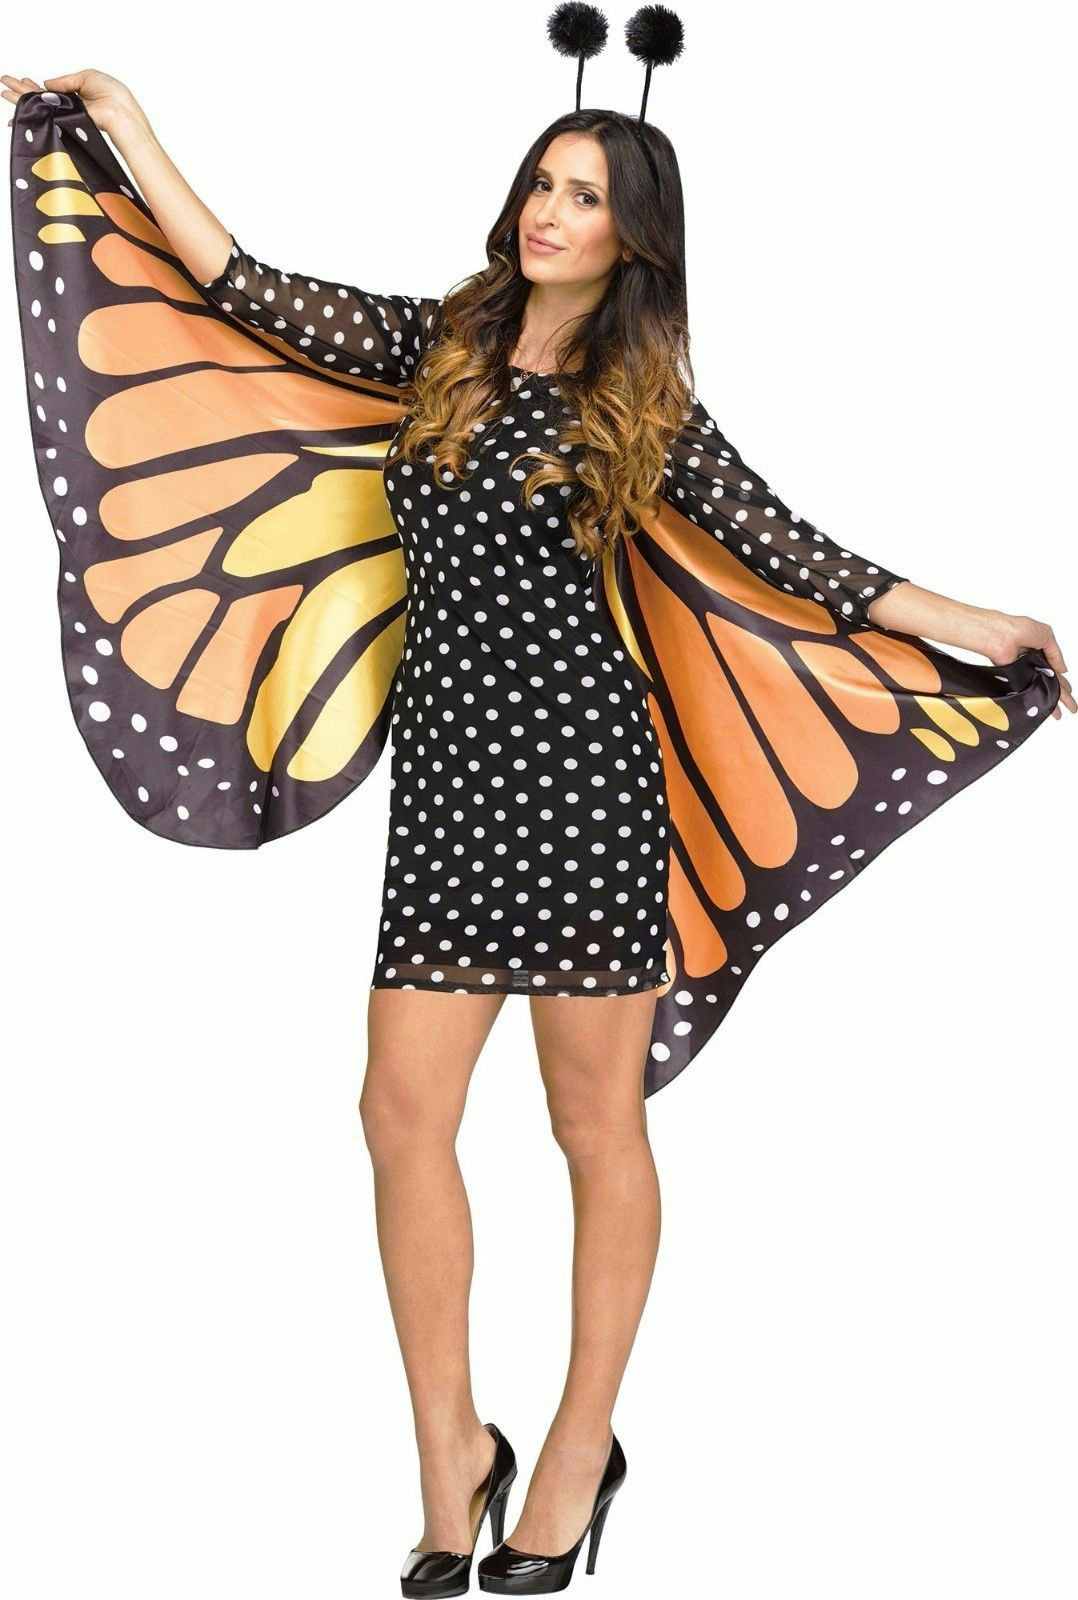 021433b6ab1 Details about Fun World Women's Fluttery Monarch Butterfly Adult Costume  M/L 10-14